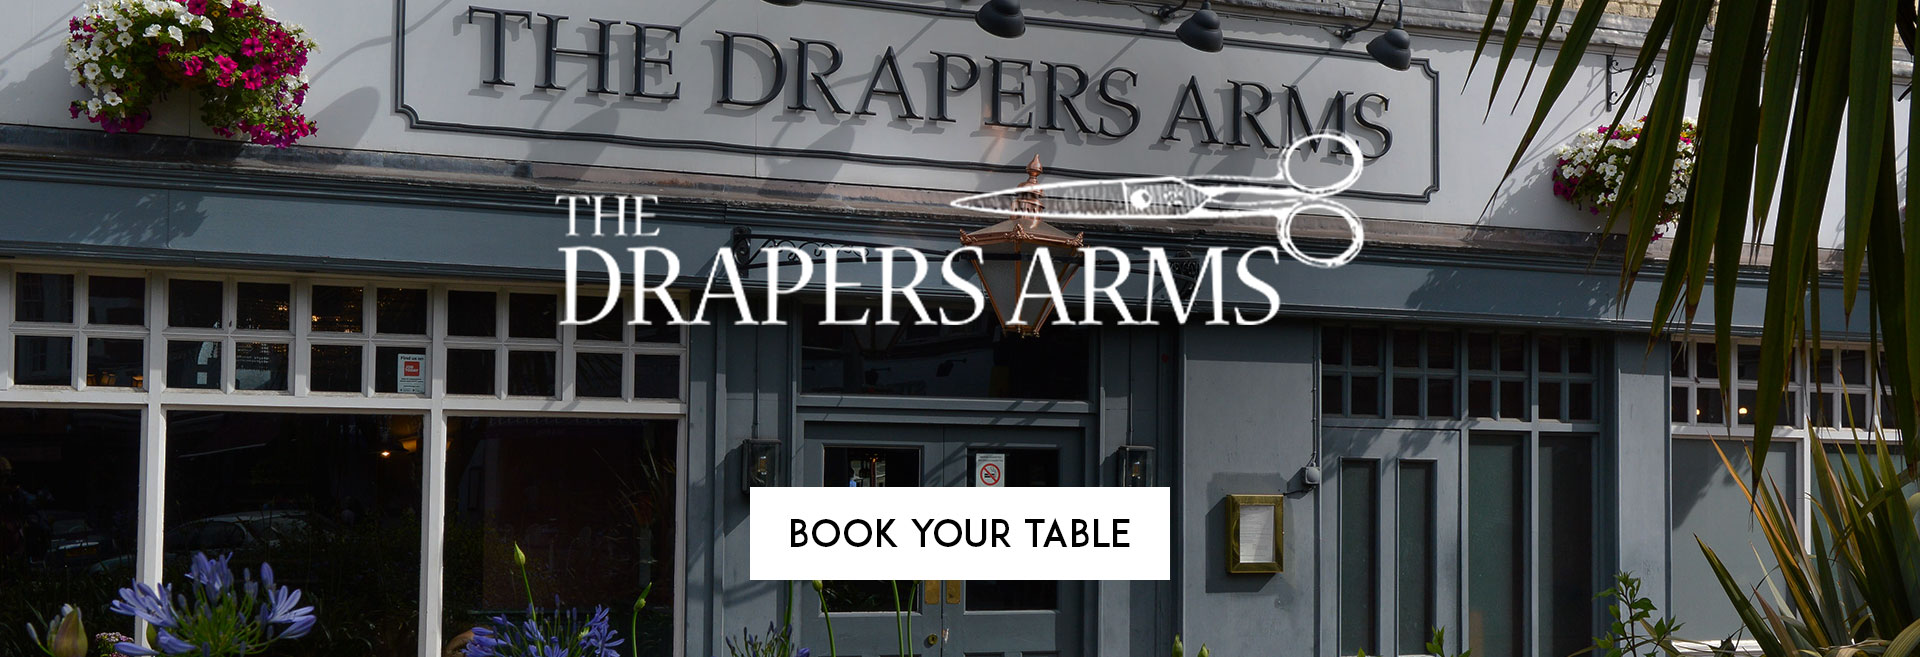 Book Your Table at The Drapers Arms